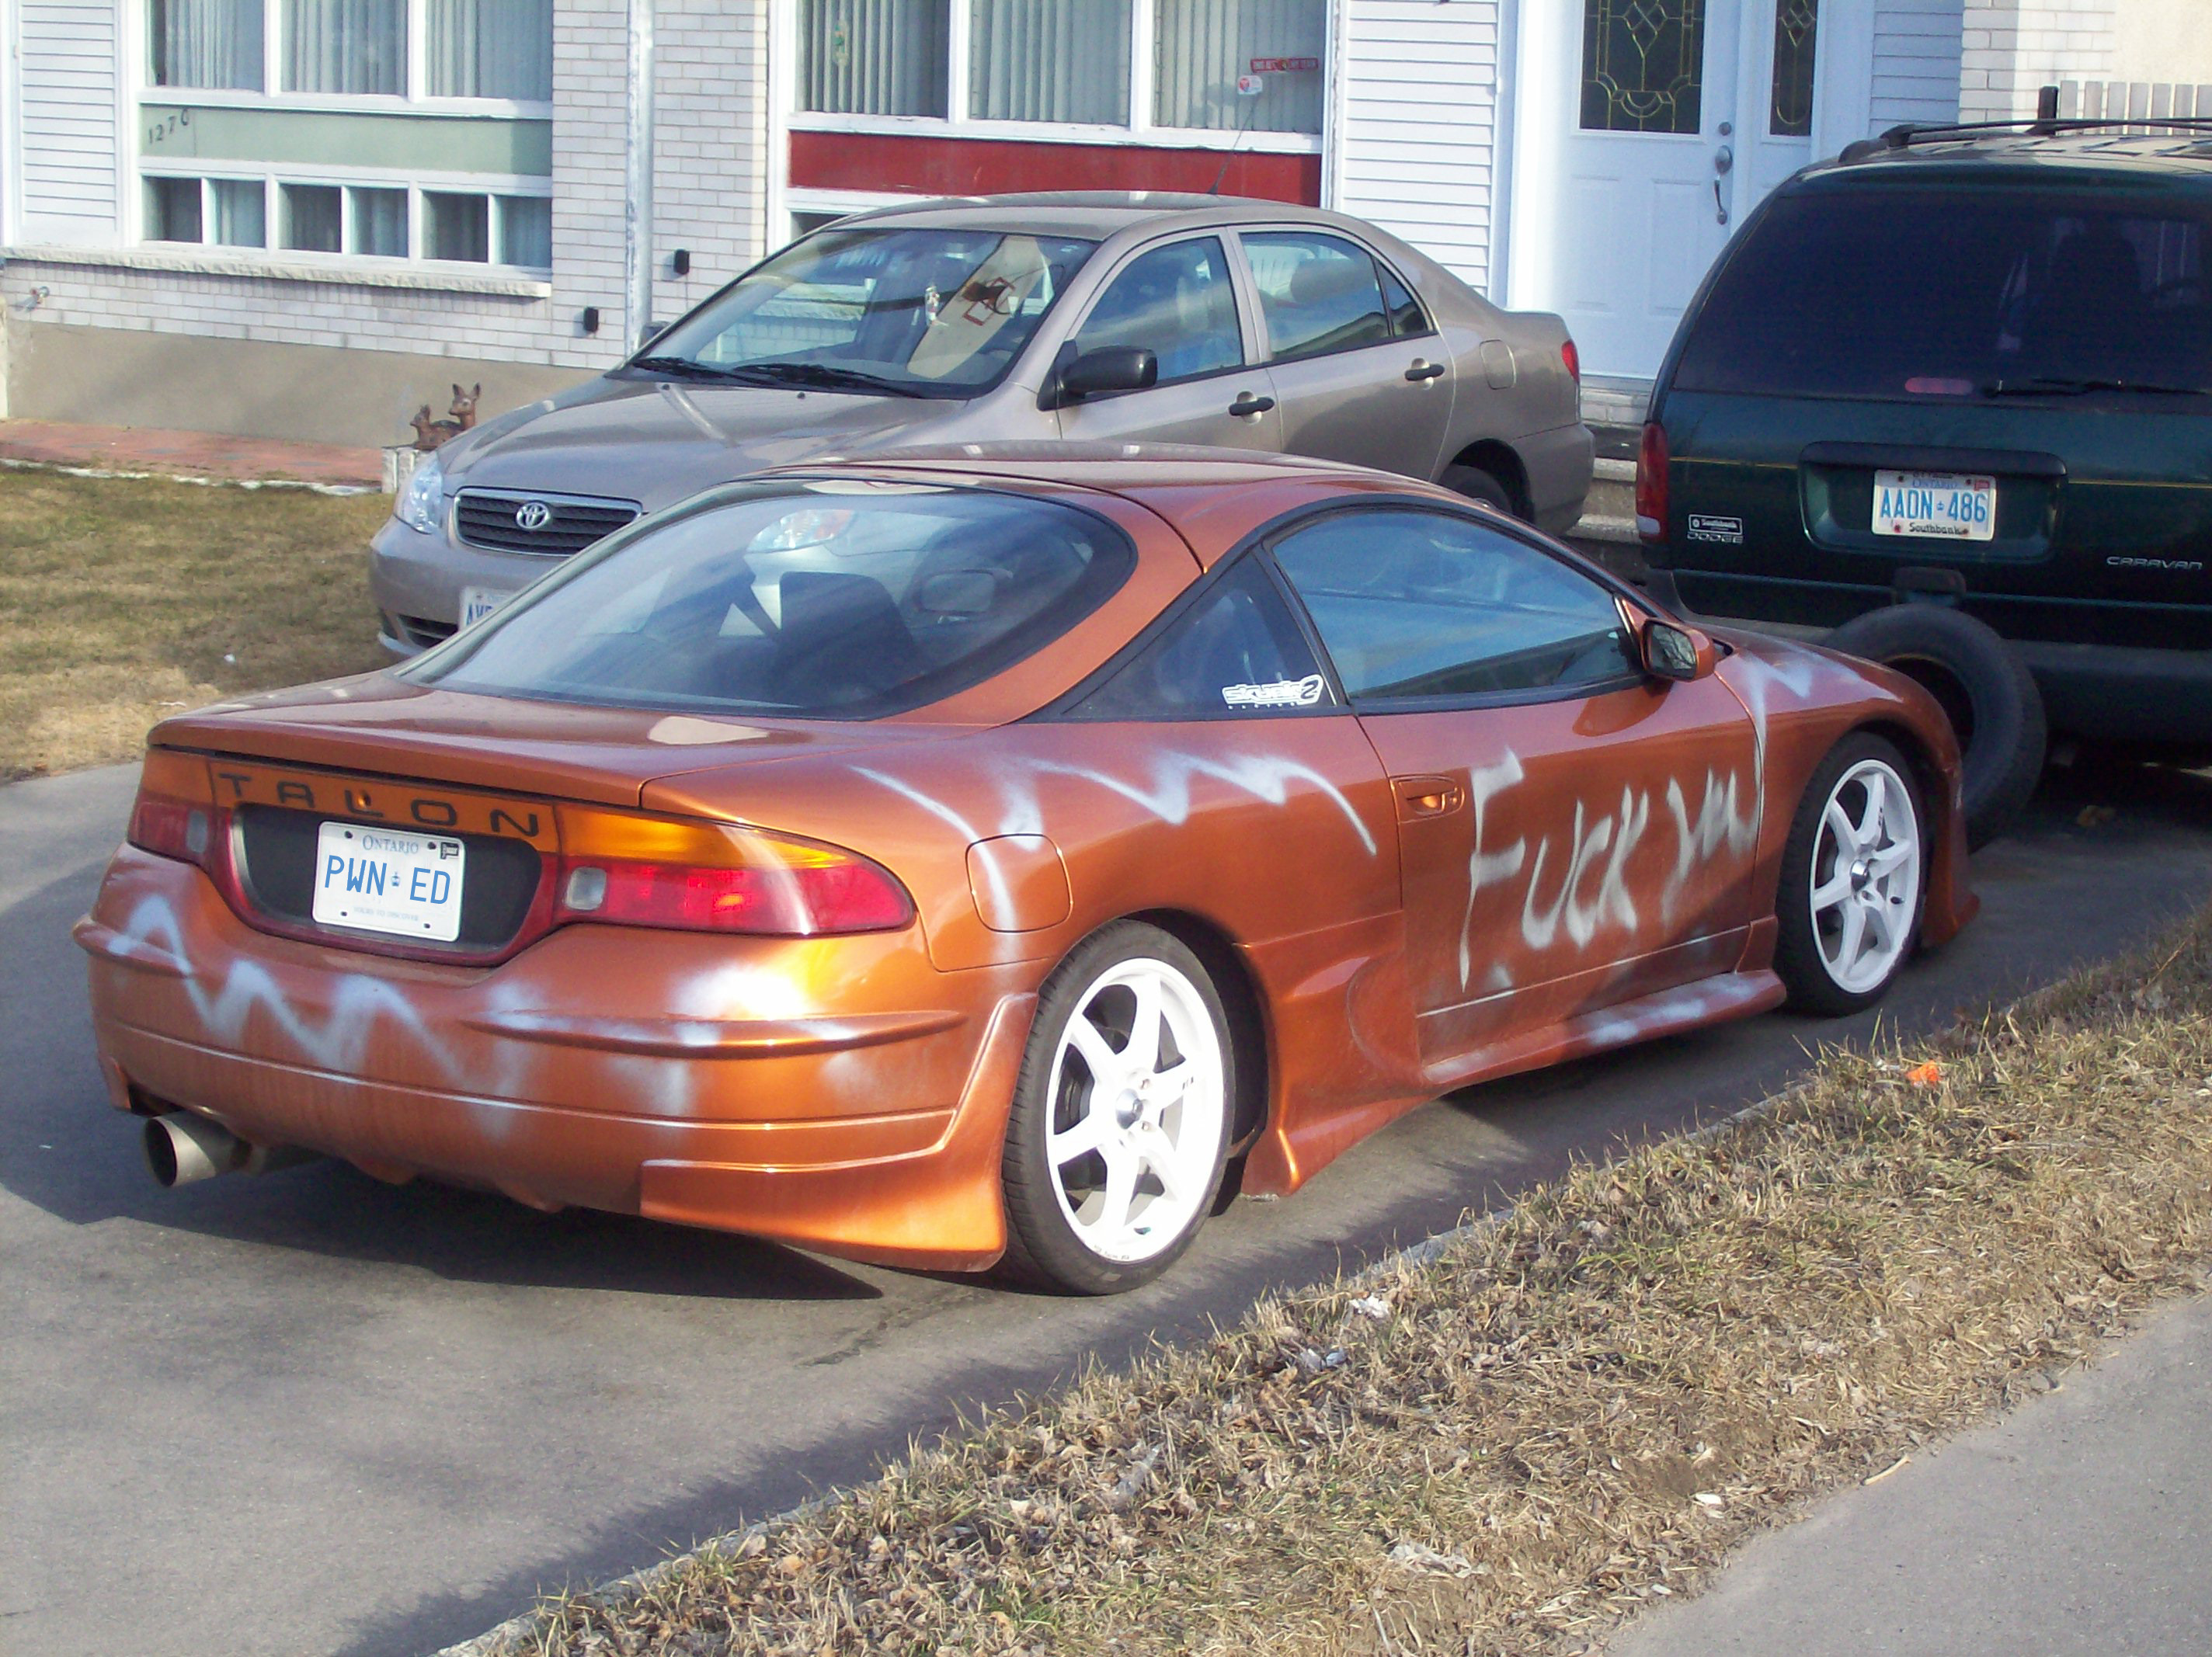 A vandalized Eagle Talon.